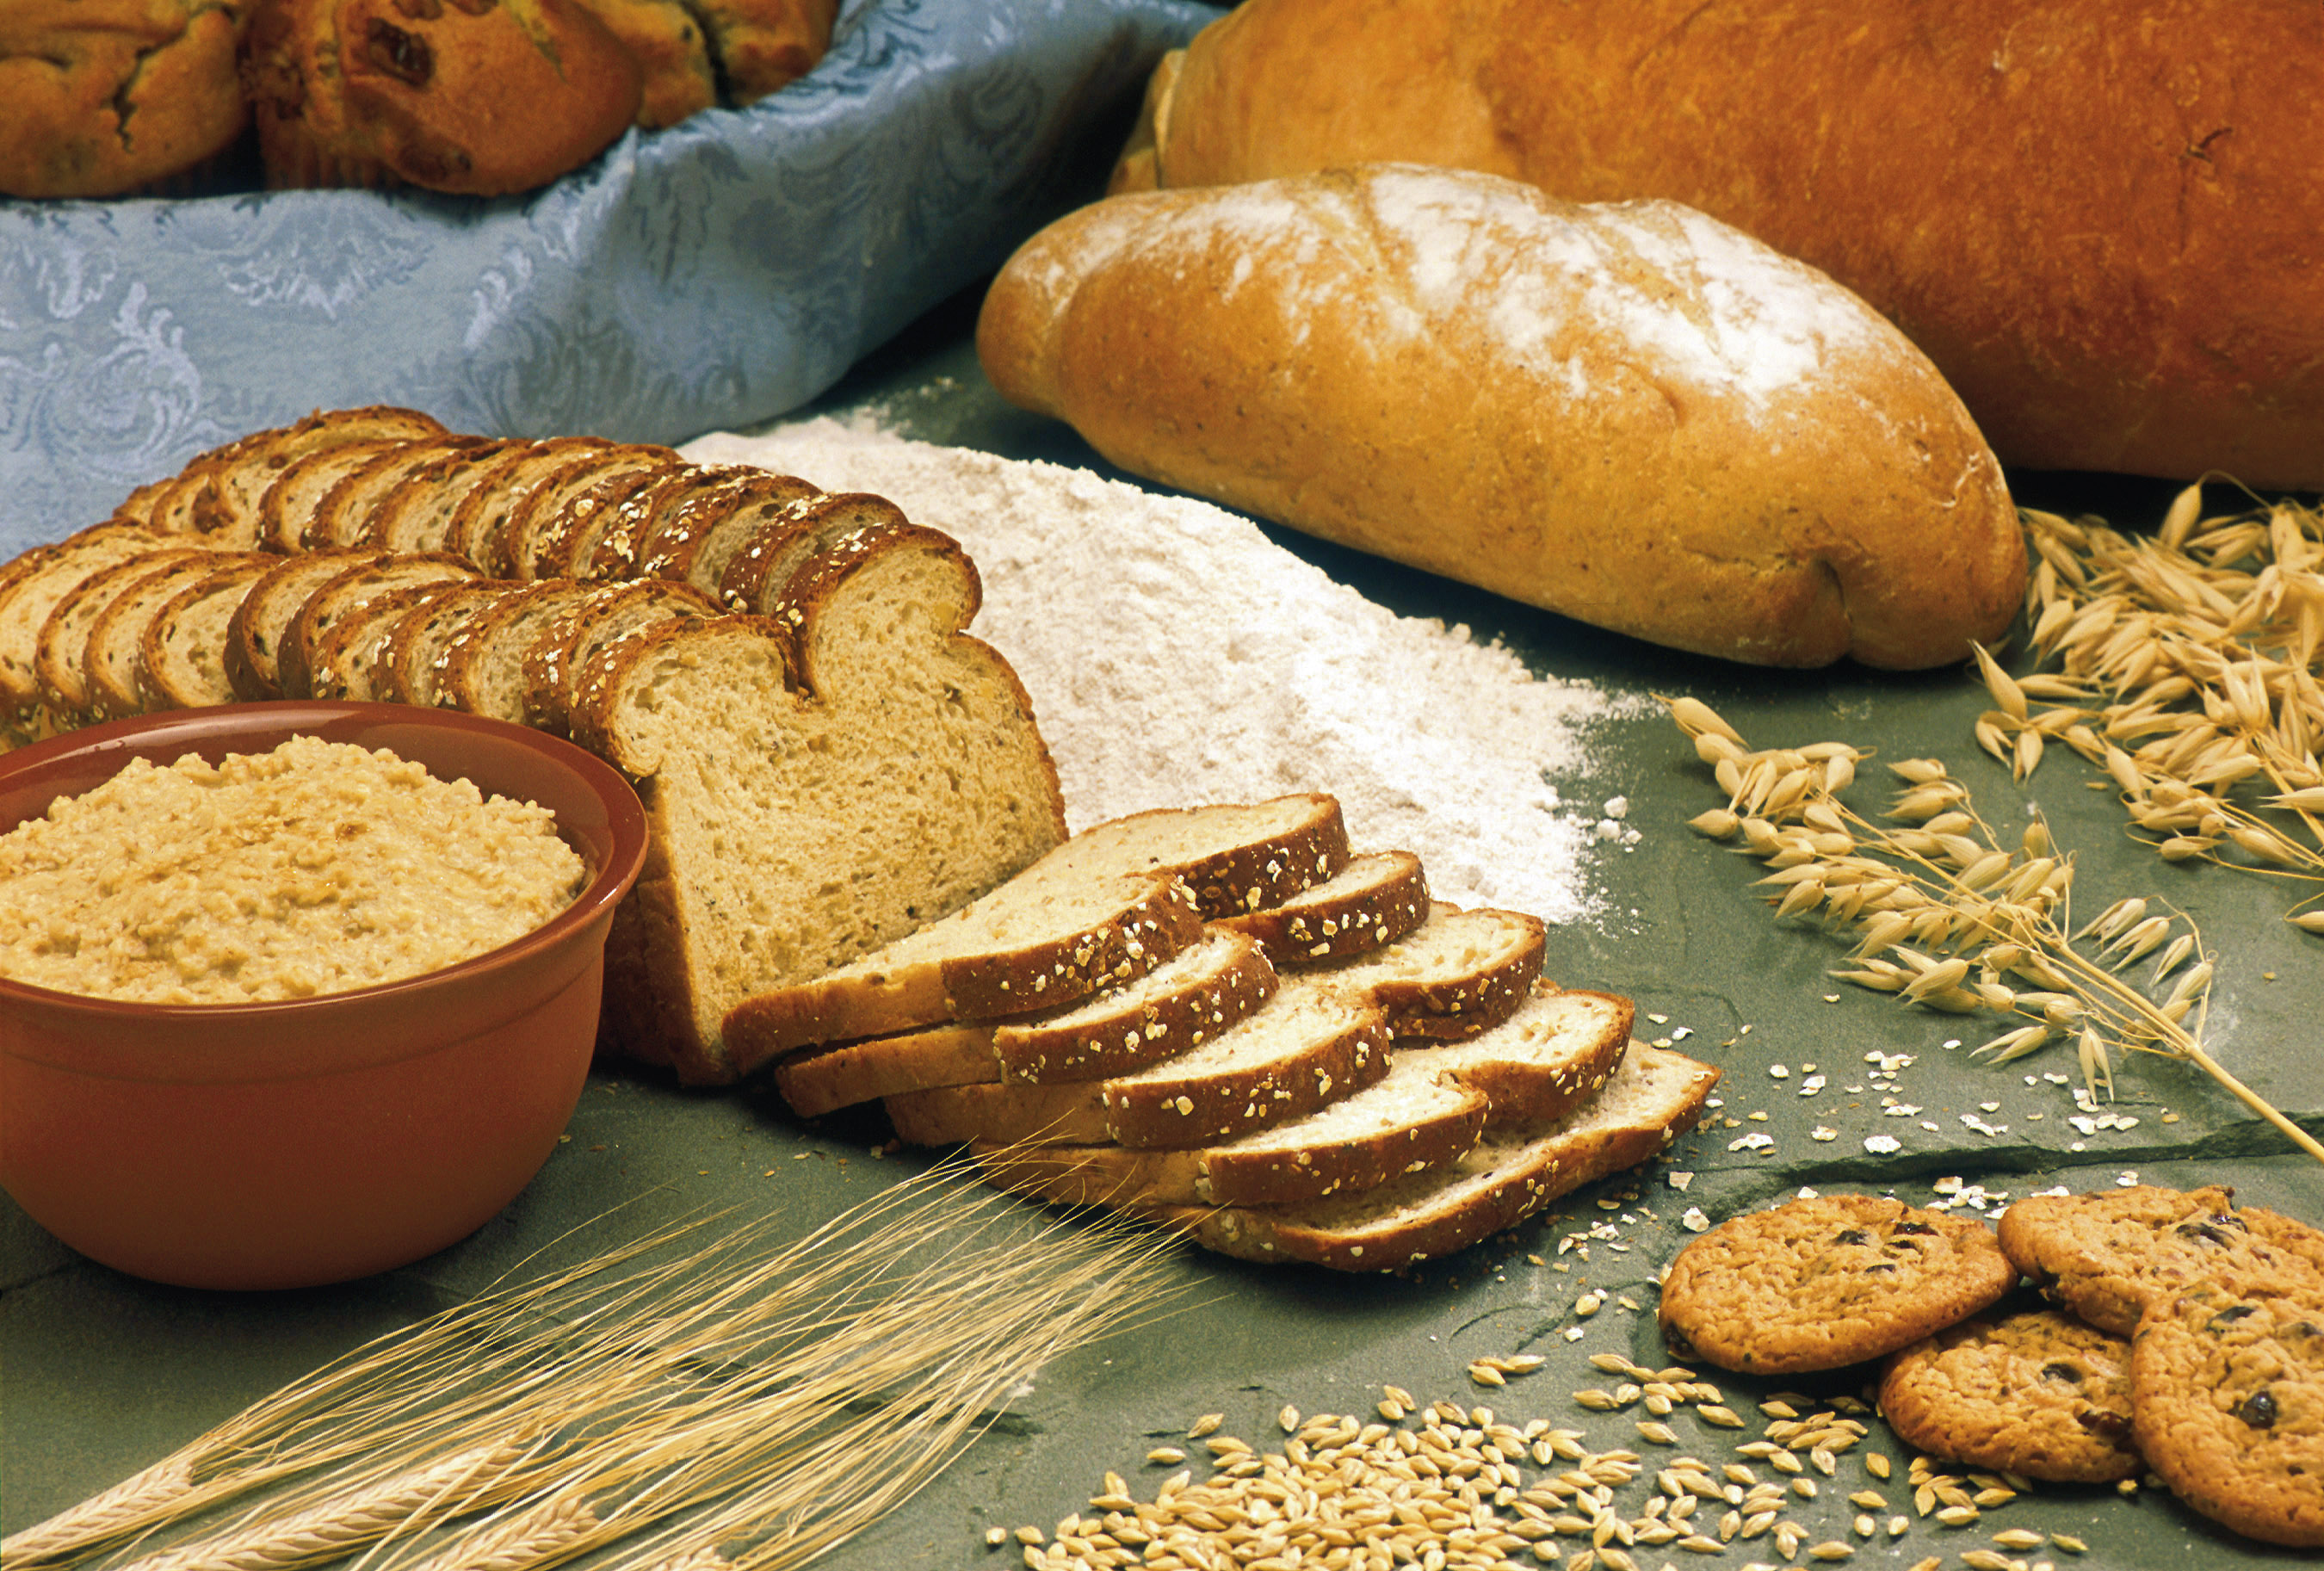 A variety of breads and grains